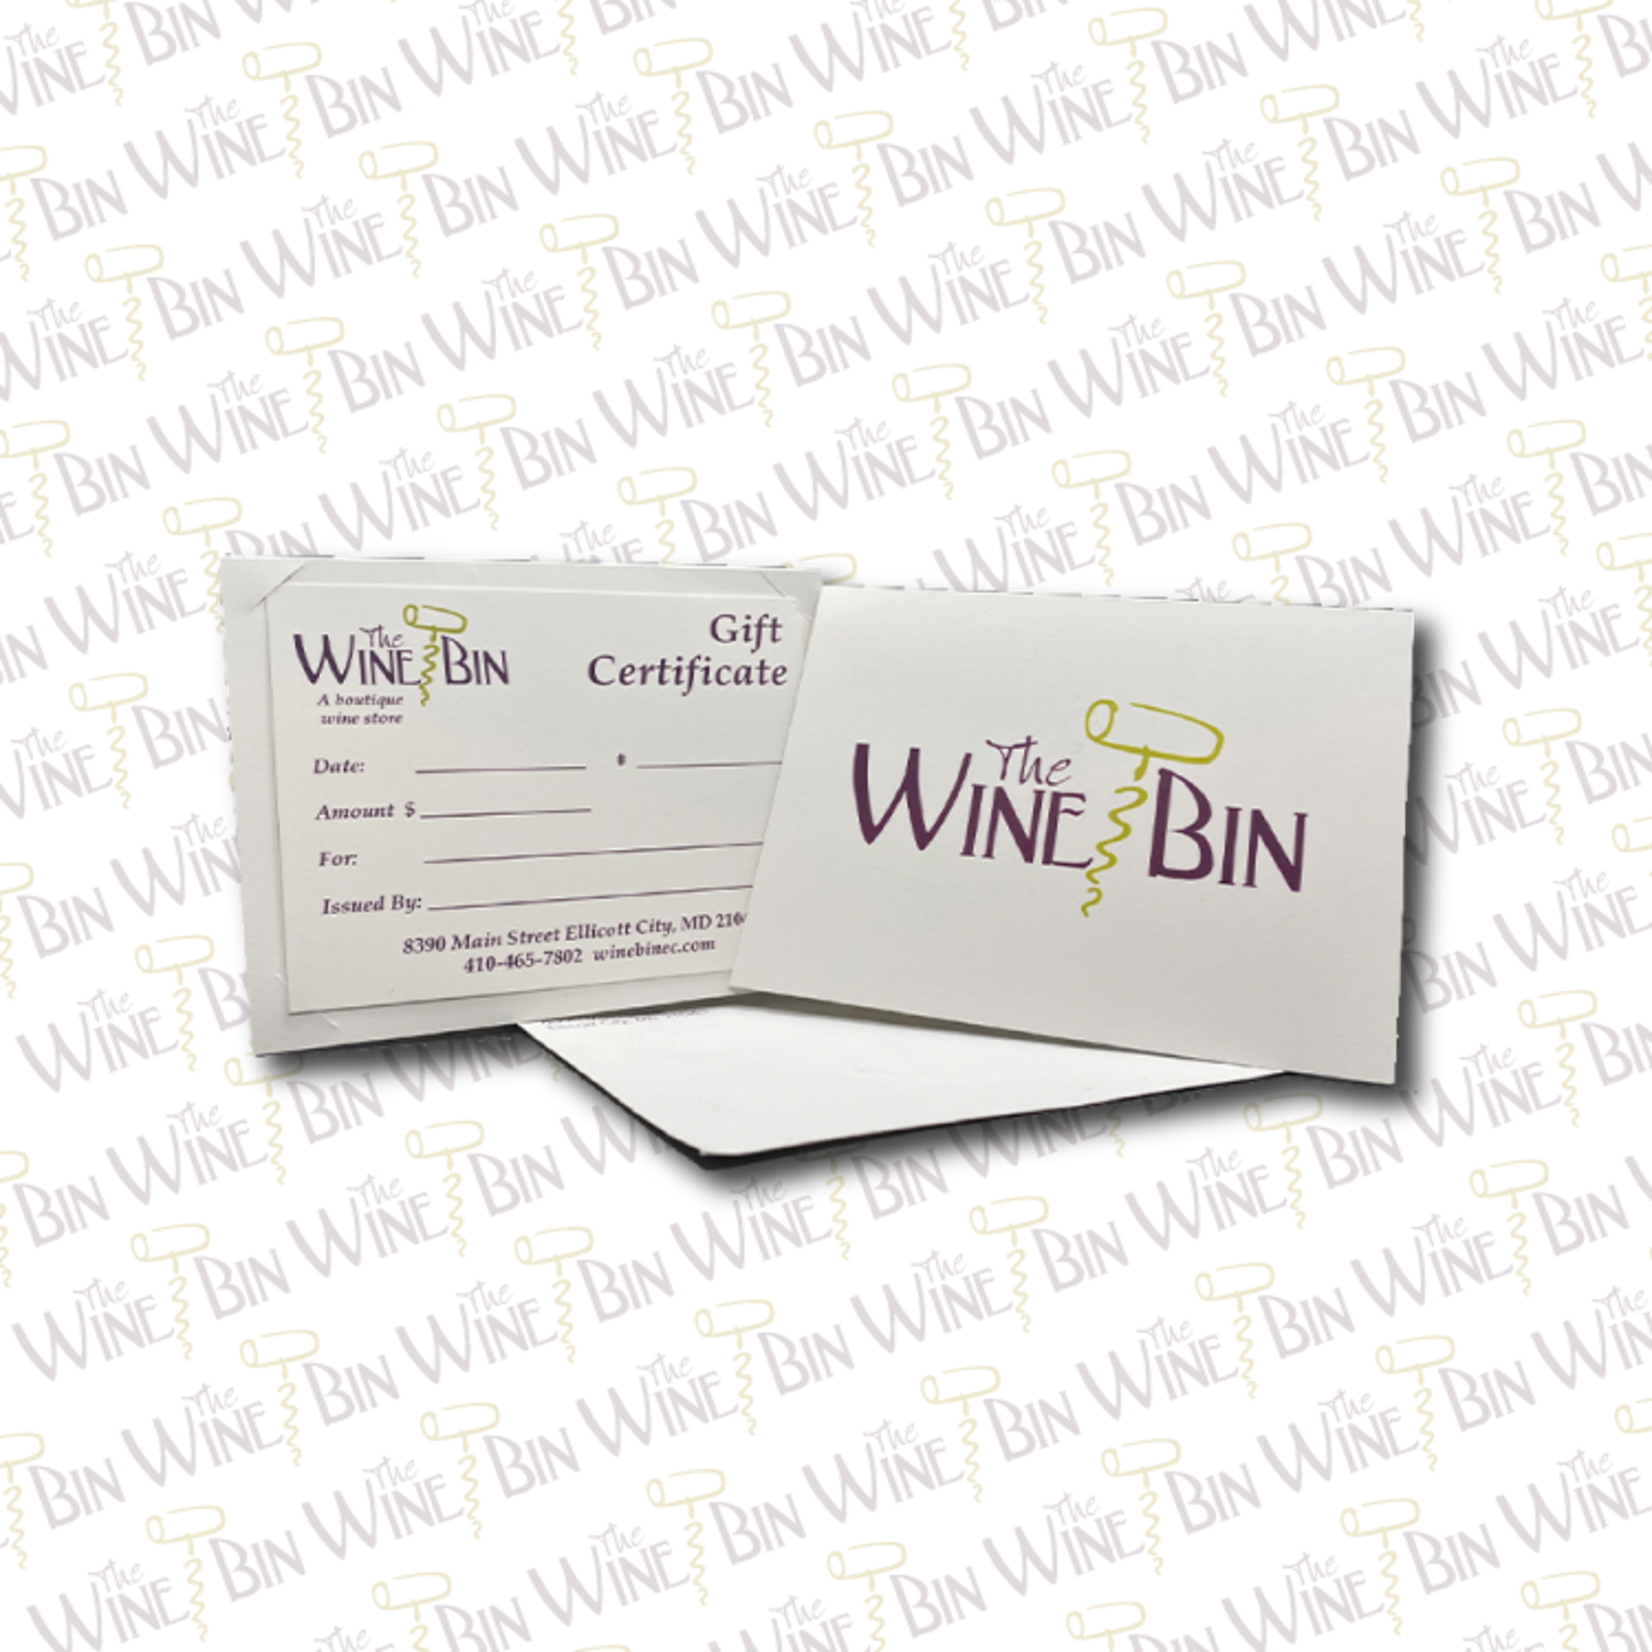 The Wine Bin The Wine Bin Gift Certificate